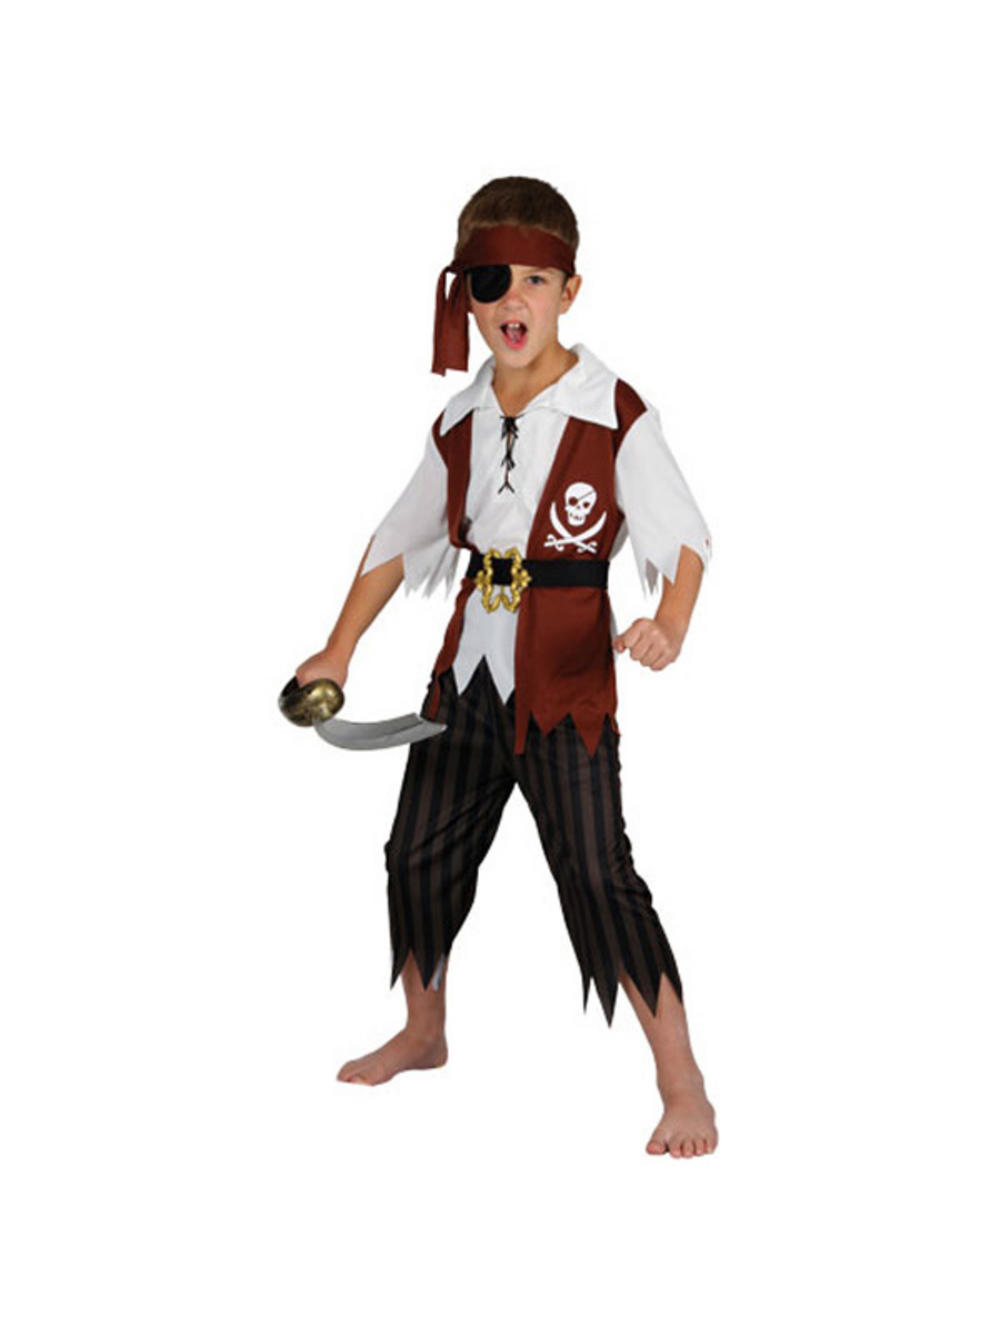 Fancy Dress Kids Pirate Mate Boy Toddler Costume. Boys Pirate Fancy Dress Costume. by Pams. £ - £ Prime. Eligible for FREE UK Delivery. Some sizes are Prime eligible. out of 5 stars Manufacturer recommended age: 36 Months - .